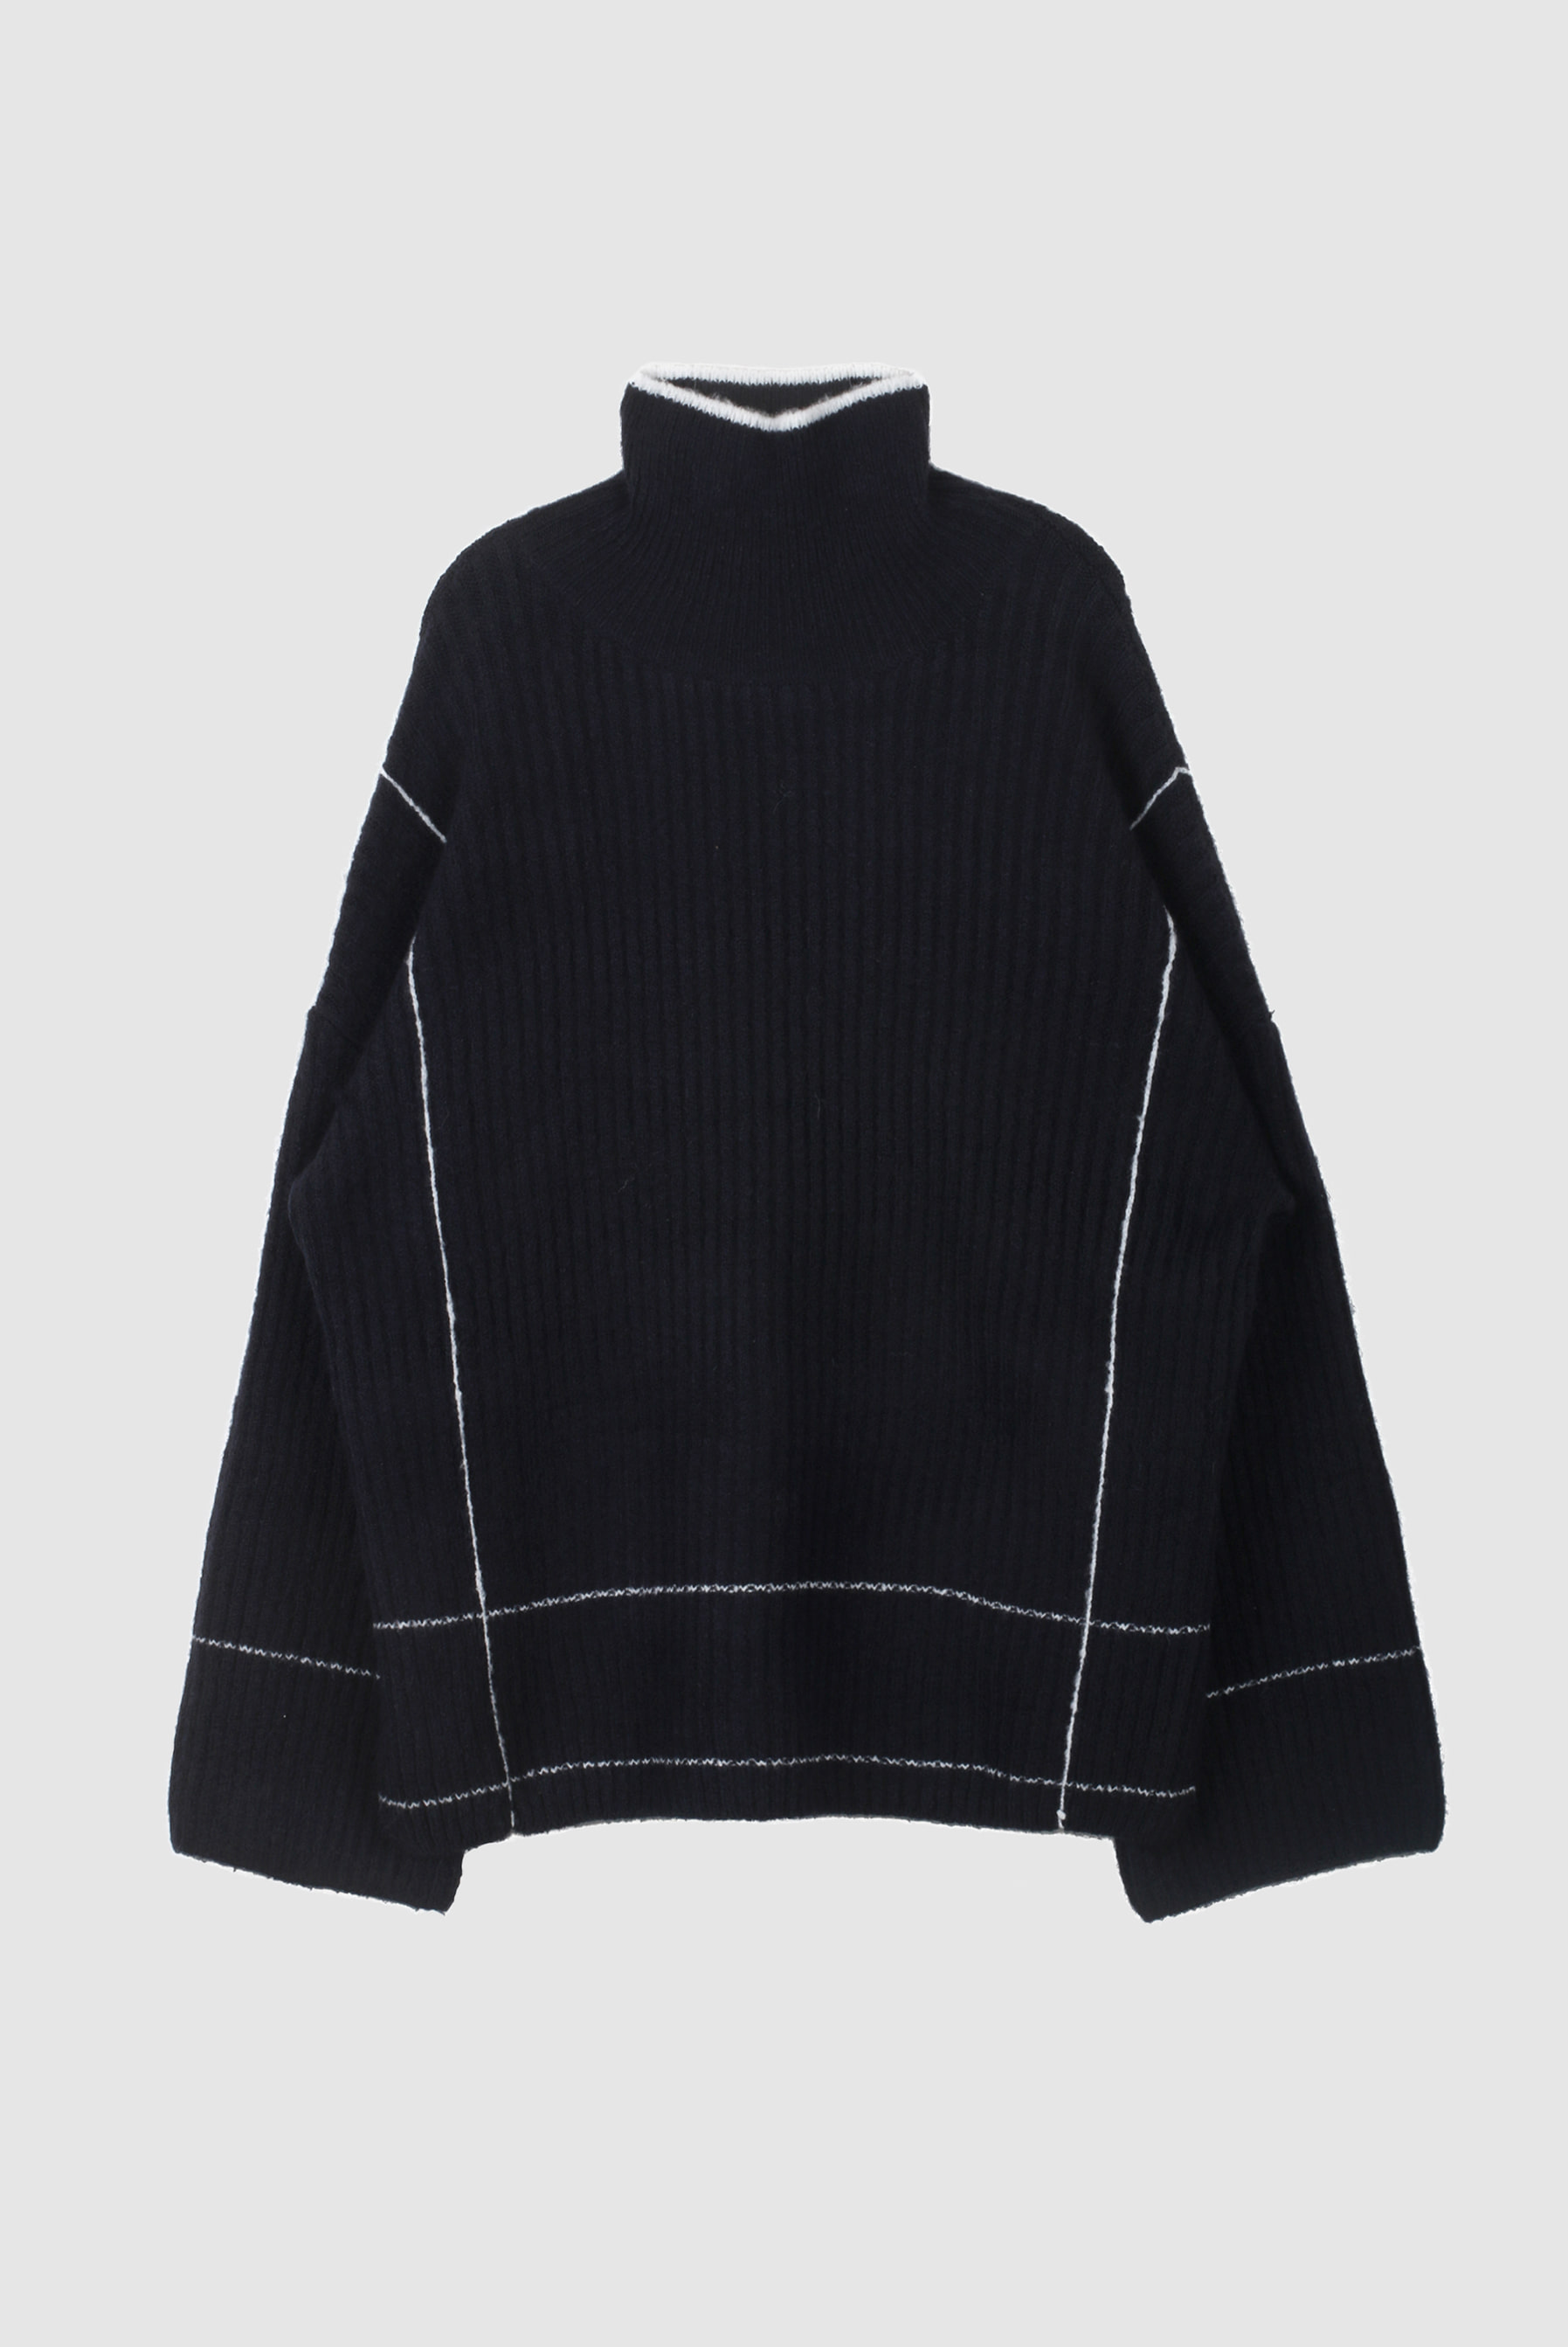 Line_Over Pola Knit